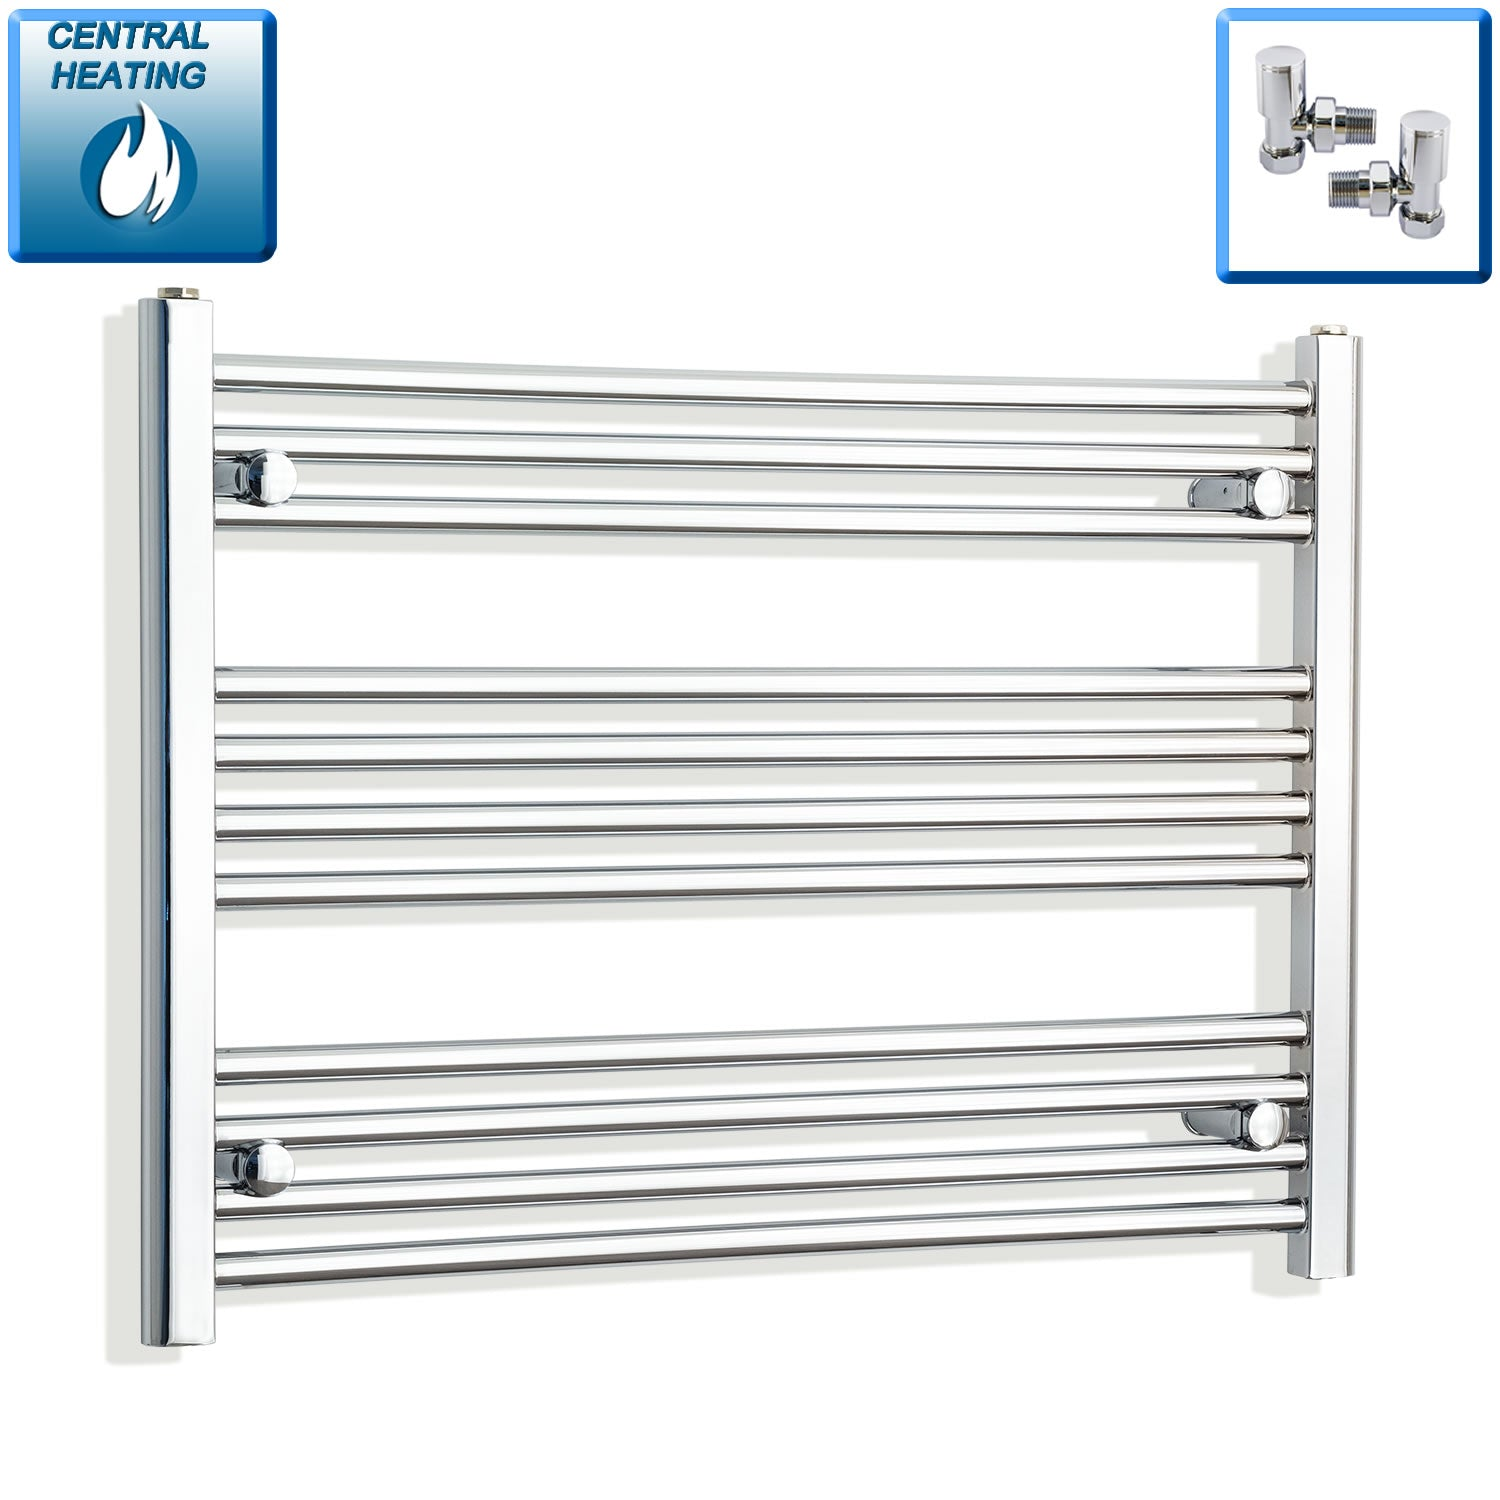 750mm Wide 600mm High Chrome Towel Rail Radiator With Angled Valve